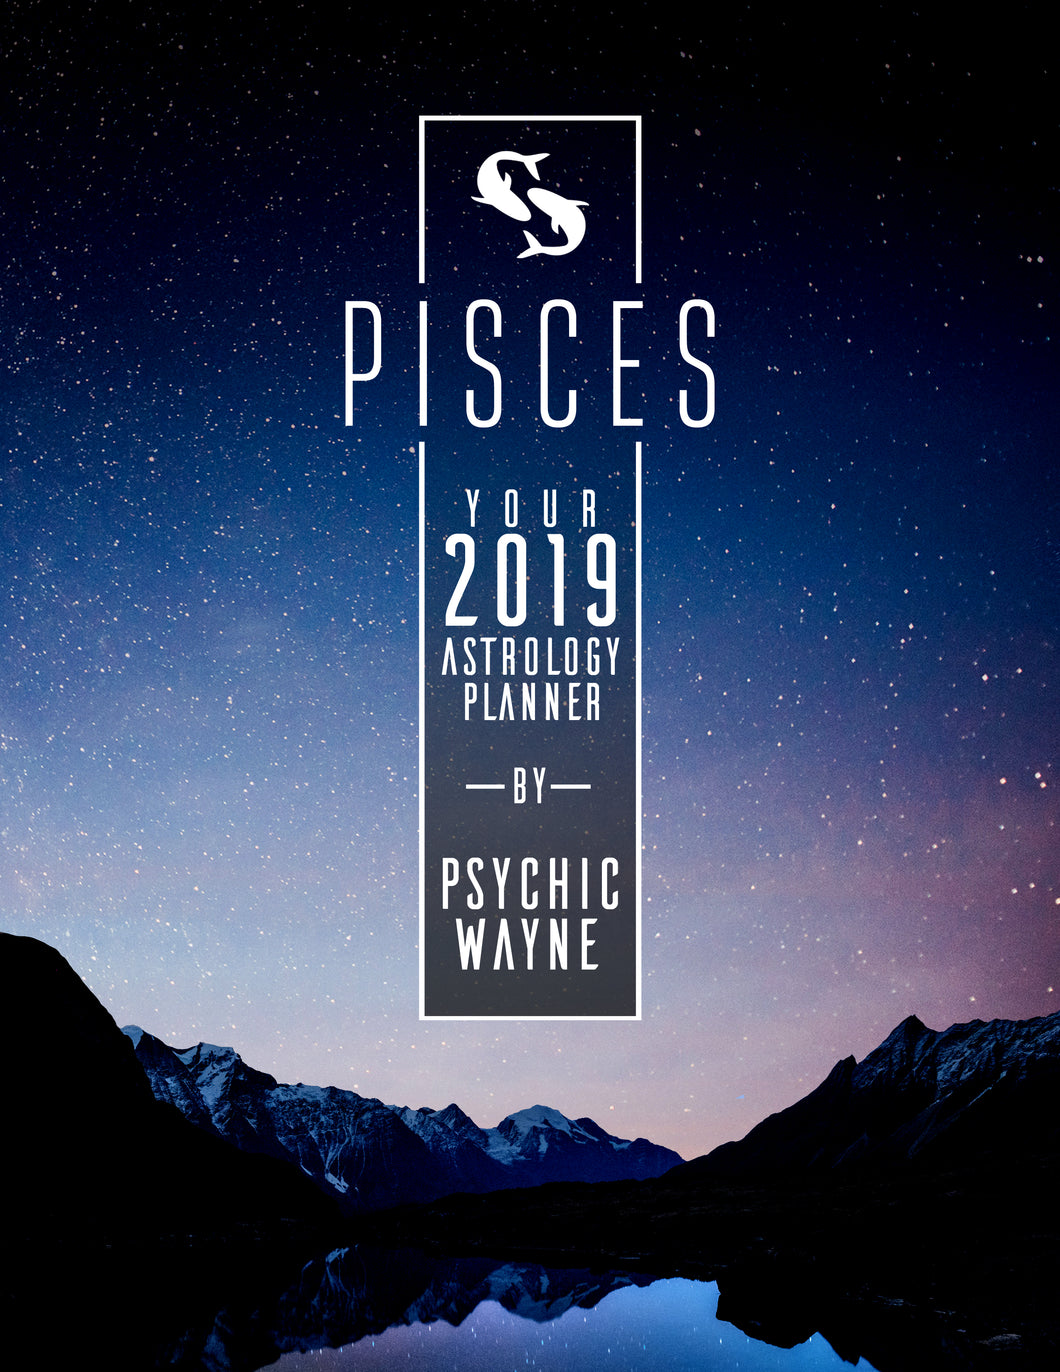 Pisces 2019 Astrology Planner